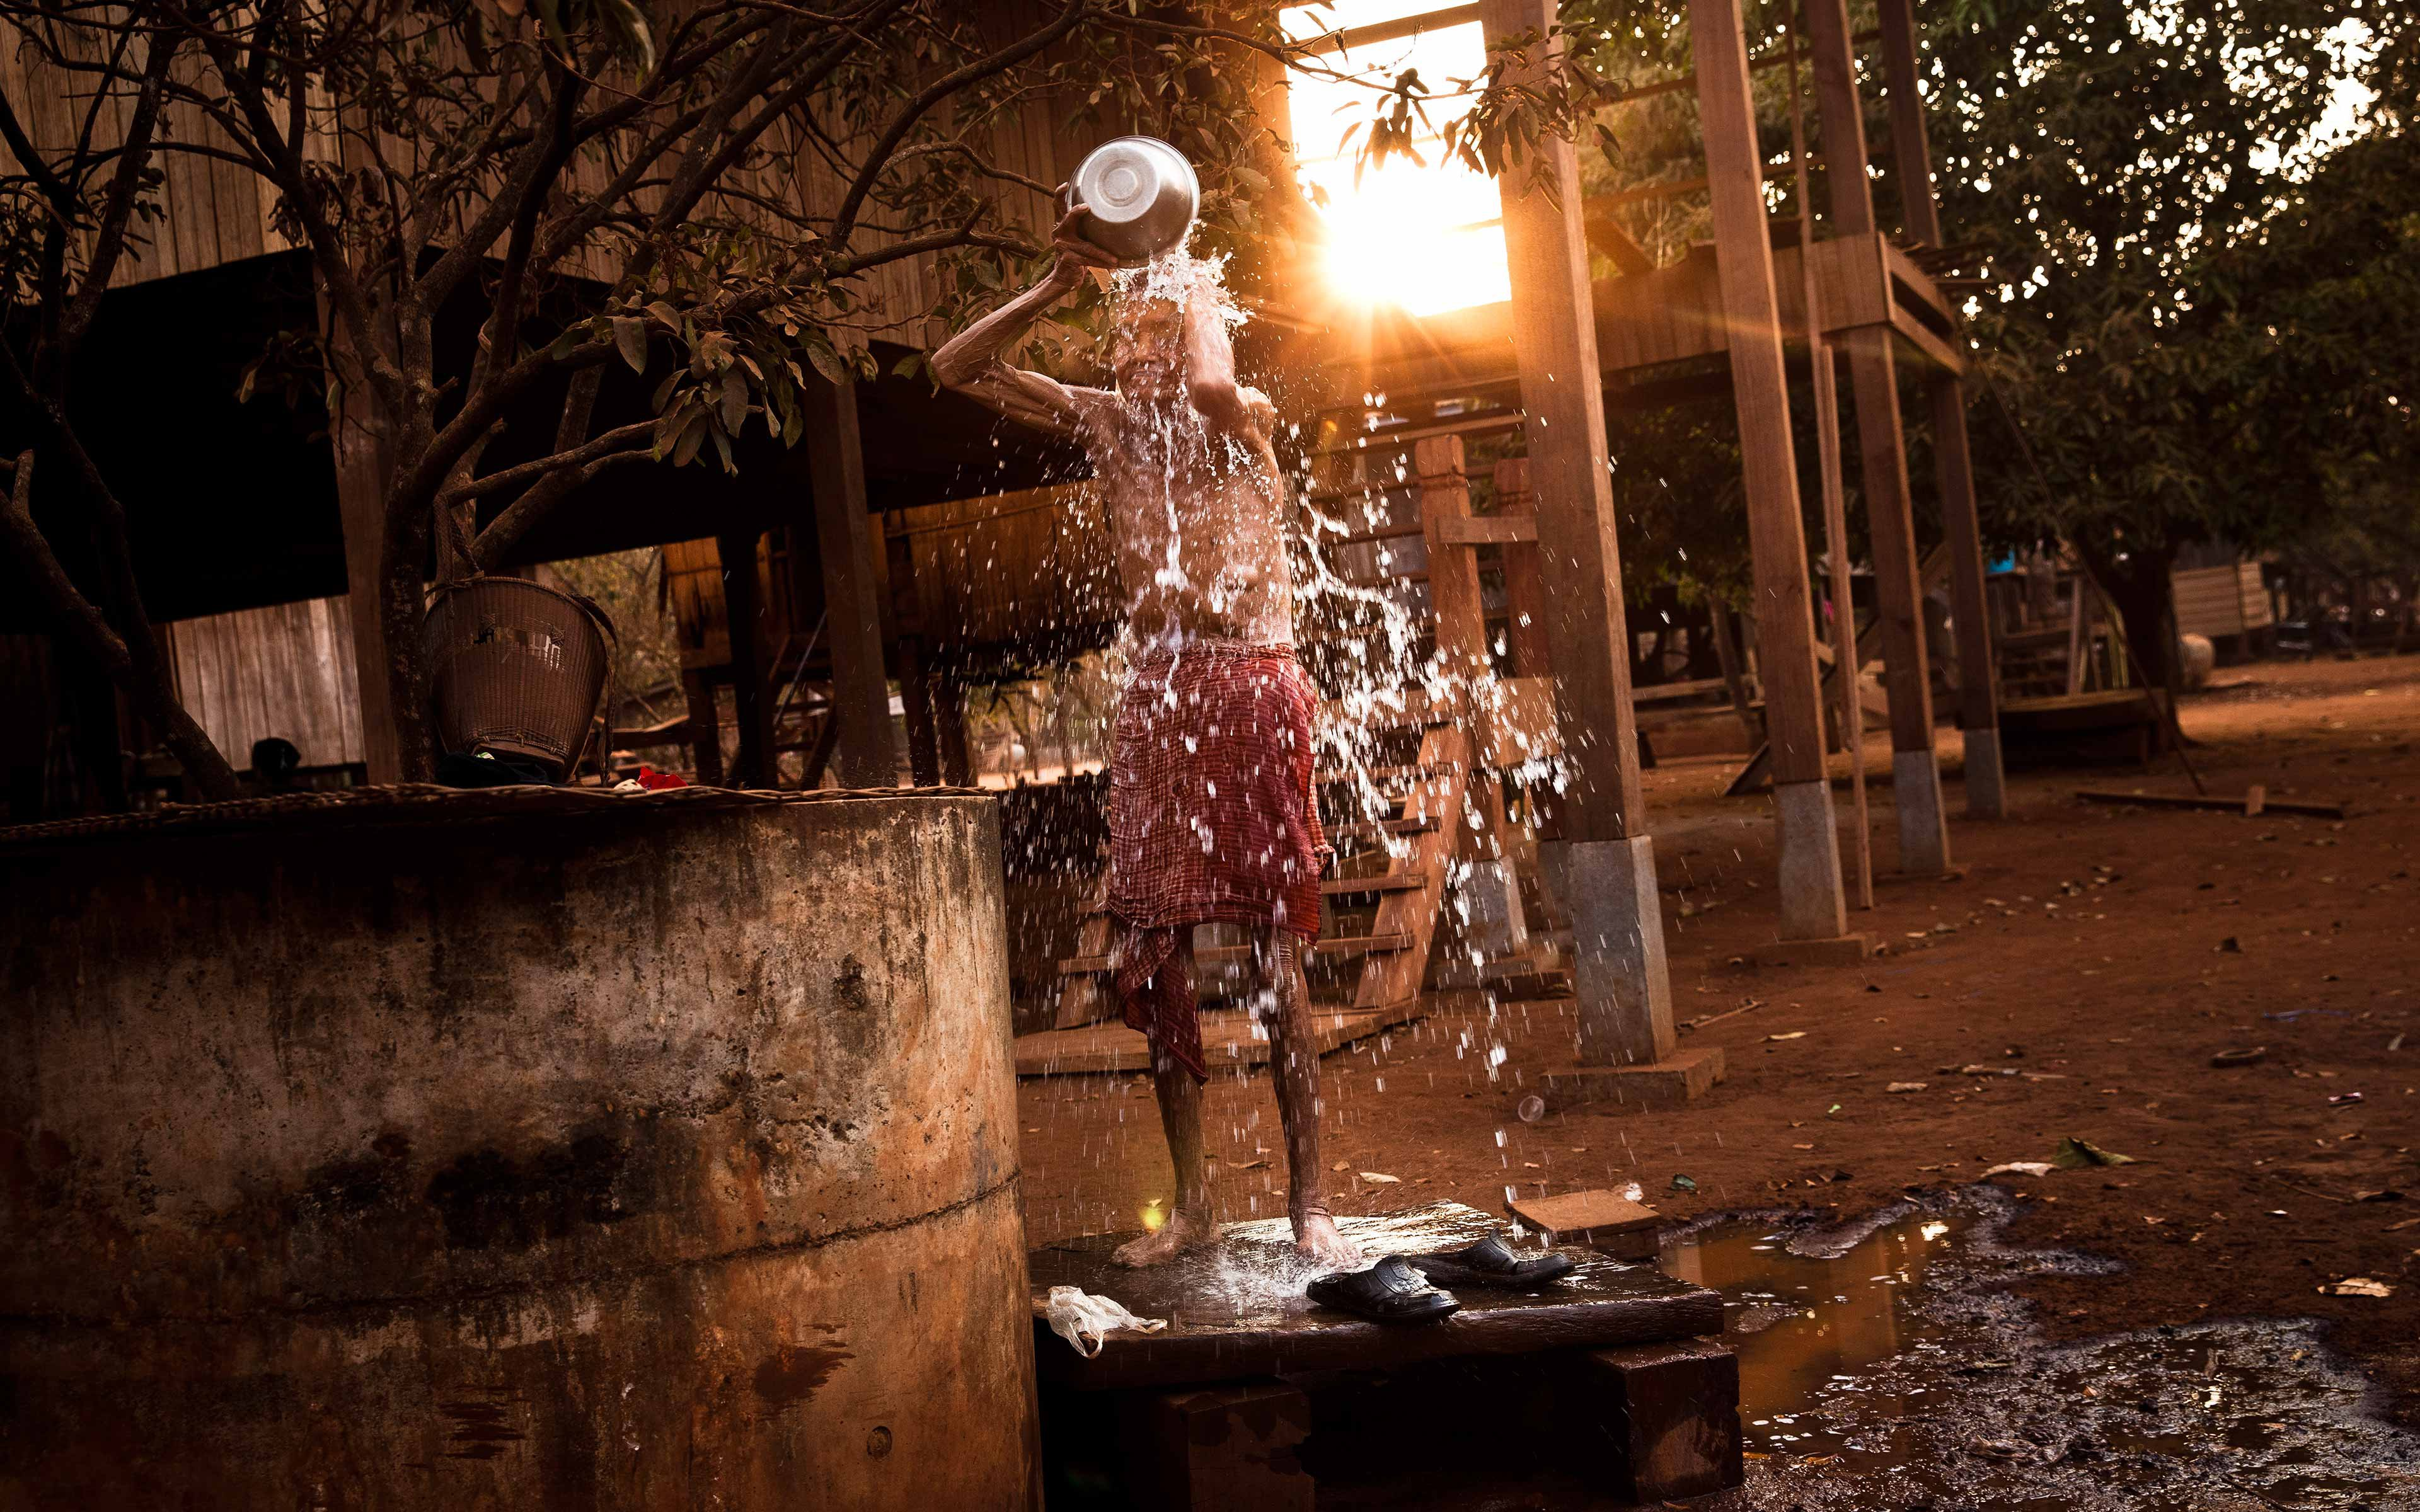 An elderly man bathes at the village well in Kanat Thom. Indigenous people in Cambodia are some of the most impoverished in the country. Though they consider their forest lands sacred, their government and foreign investors see only the money that can be made from those lands.